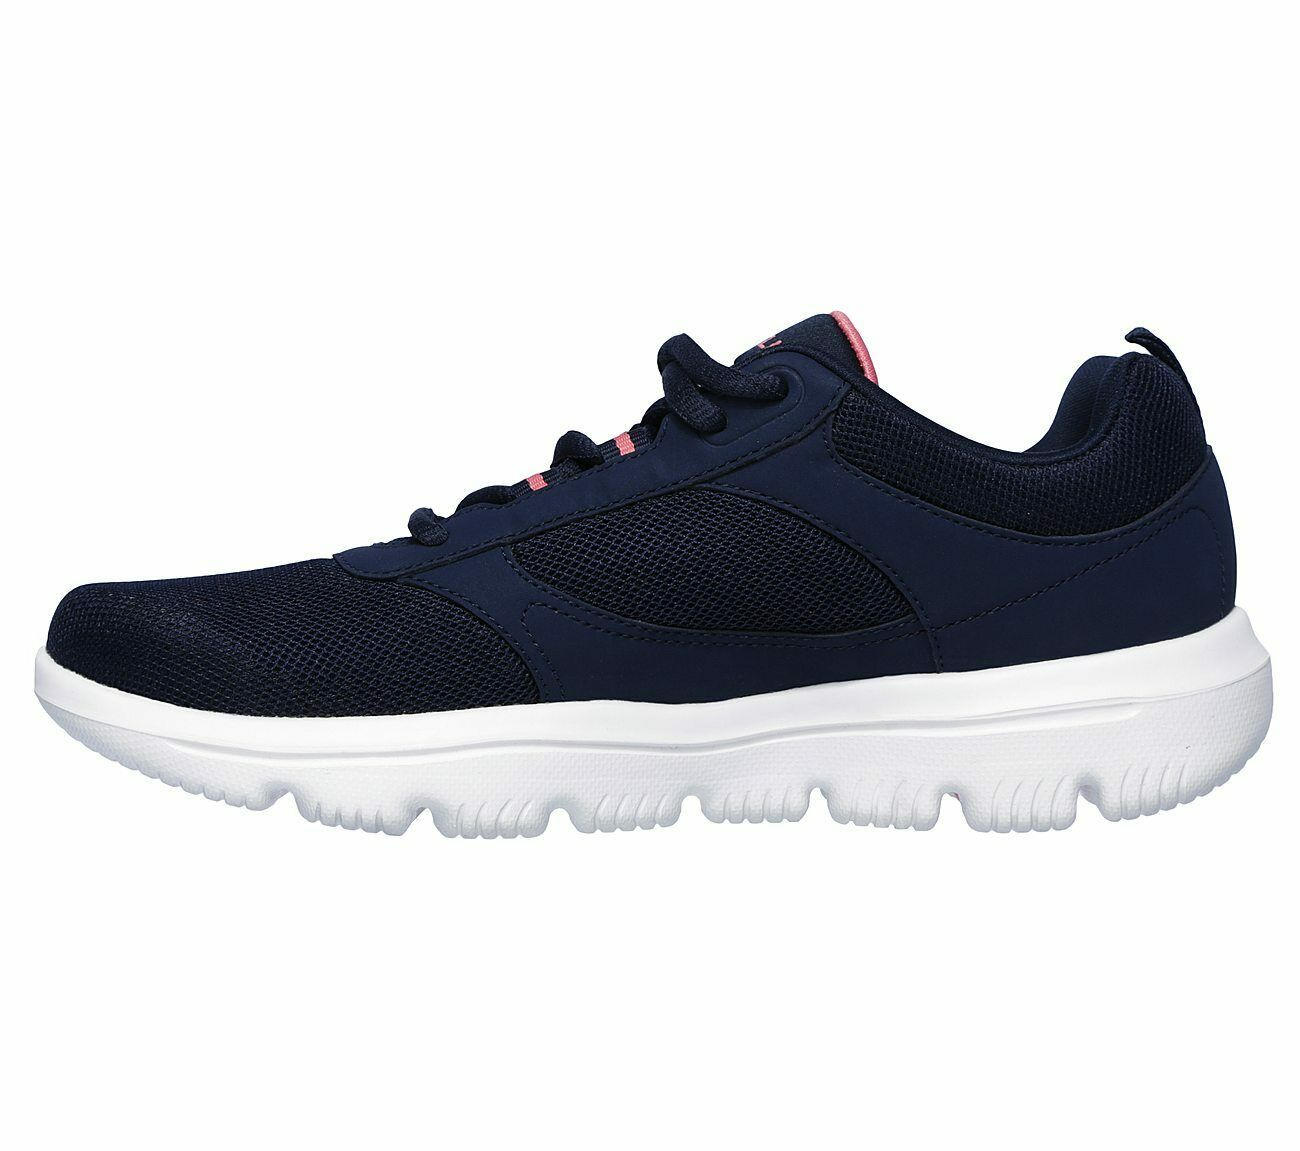 Skechers Navy Coral shoes Women Go Walk Comfort Mesh Casual Sporty Lace Up 15734 image 3